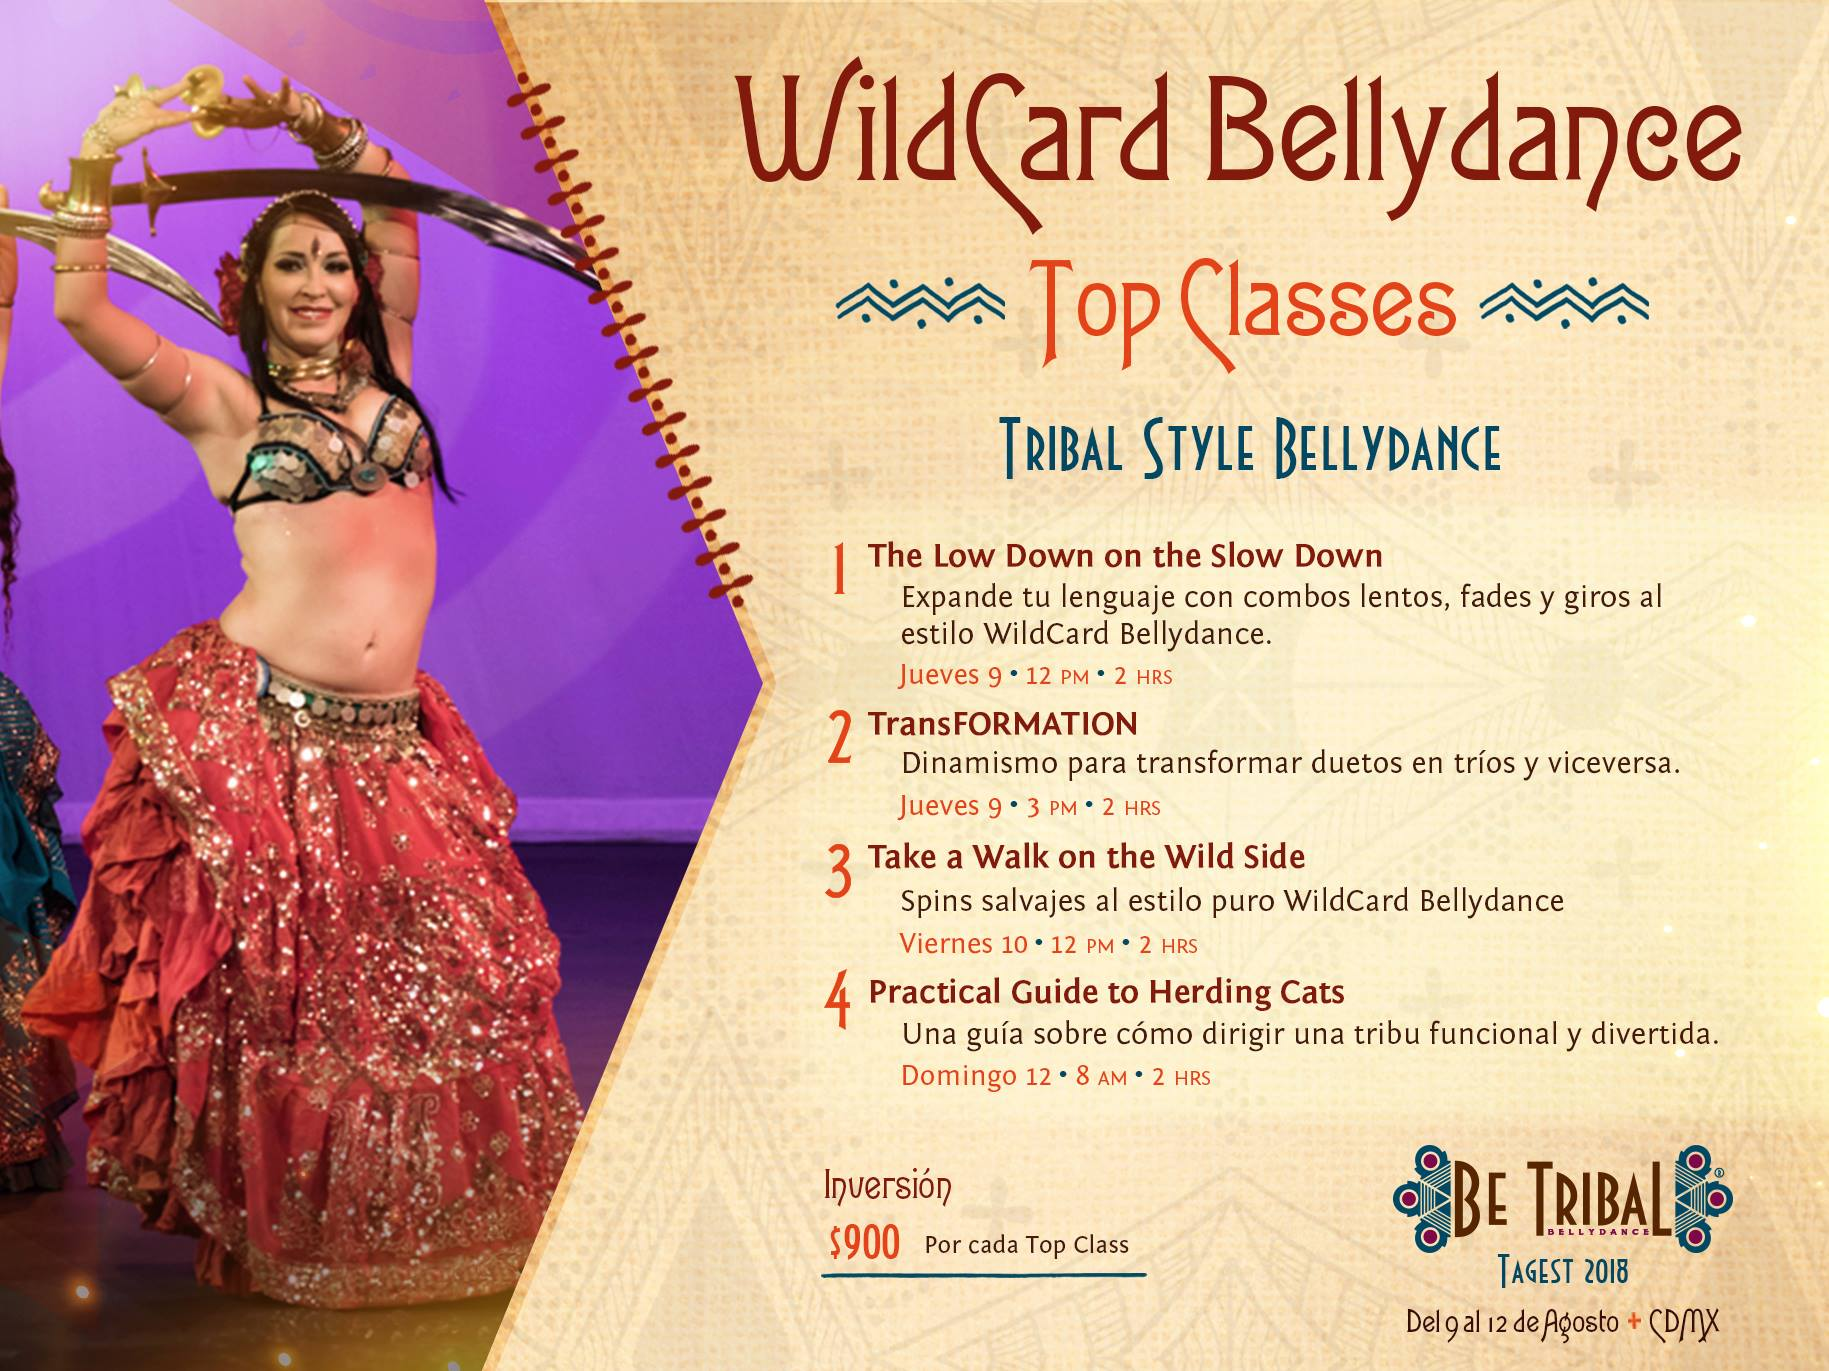 Top Classes Wildcard Bellydance